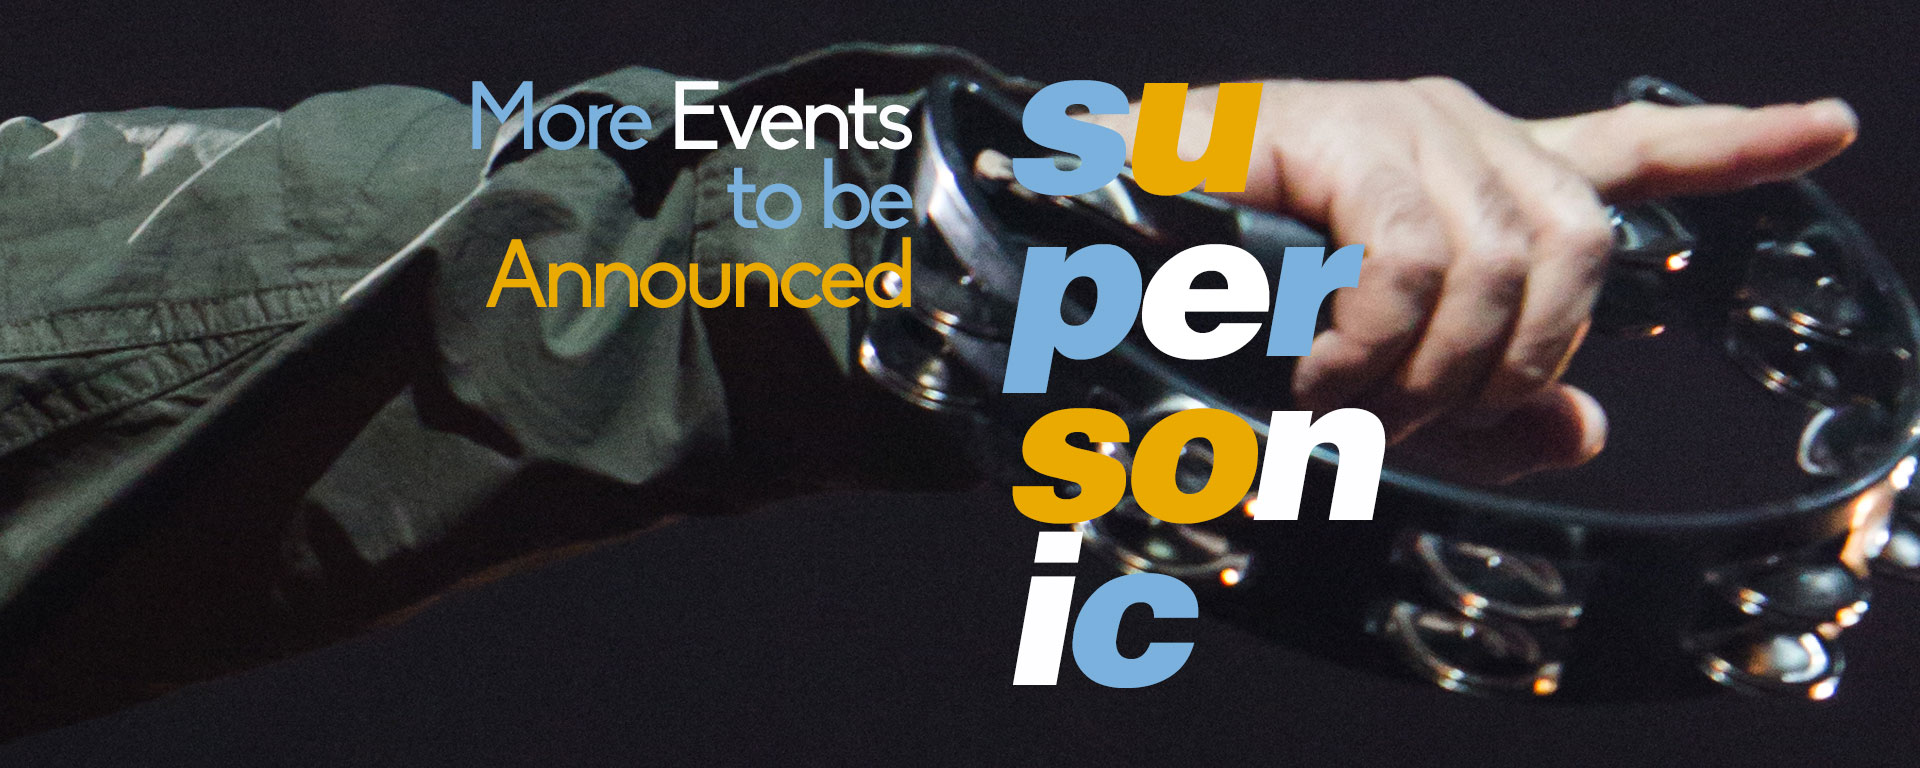 Supersonic_banner_evento_3